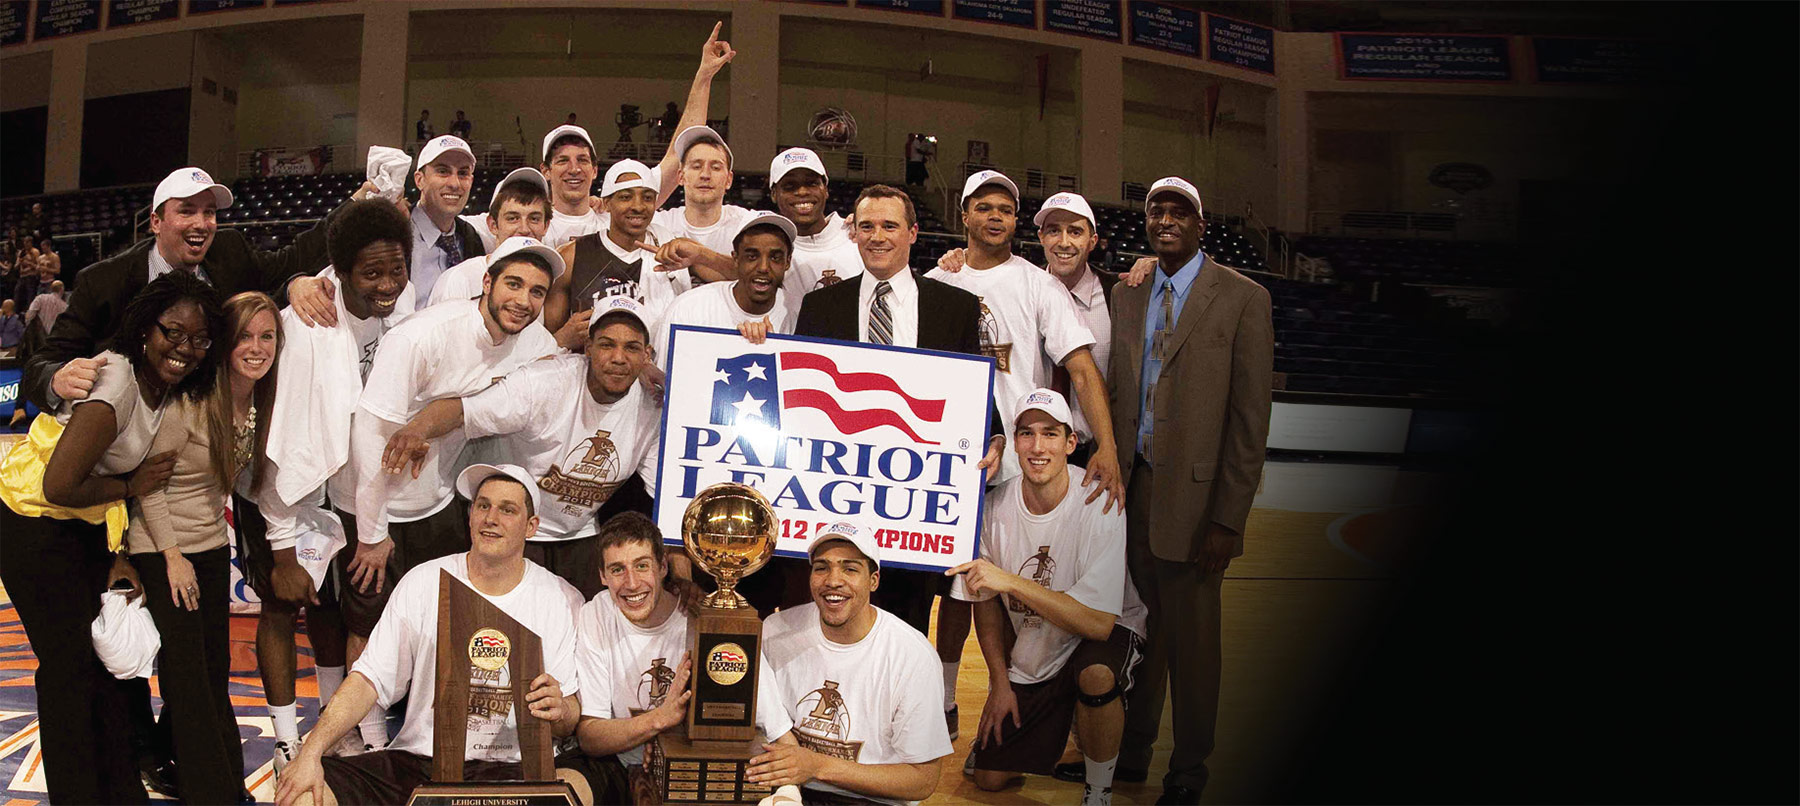 Lehigh University basketball team after winning the Patriot League championship